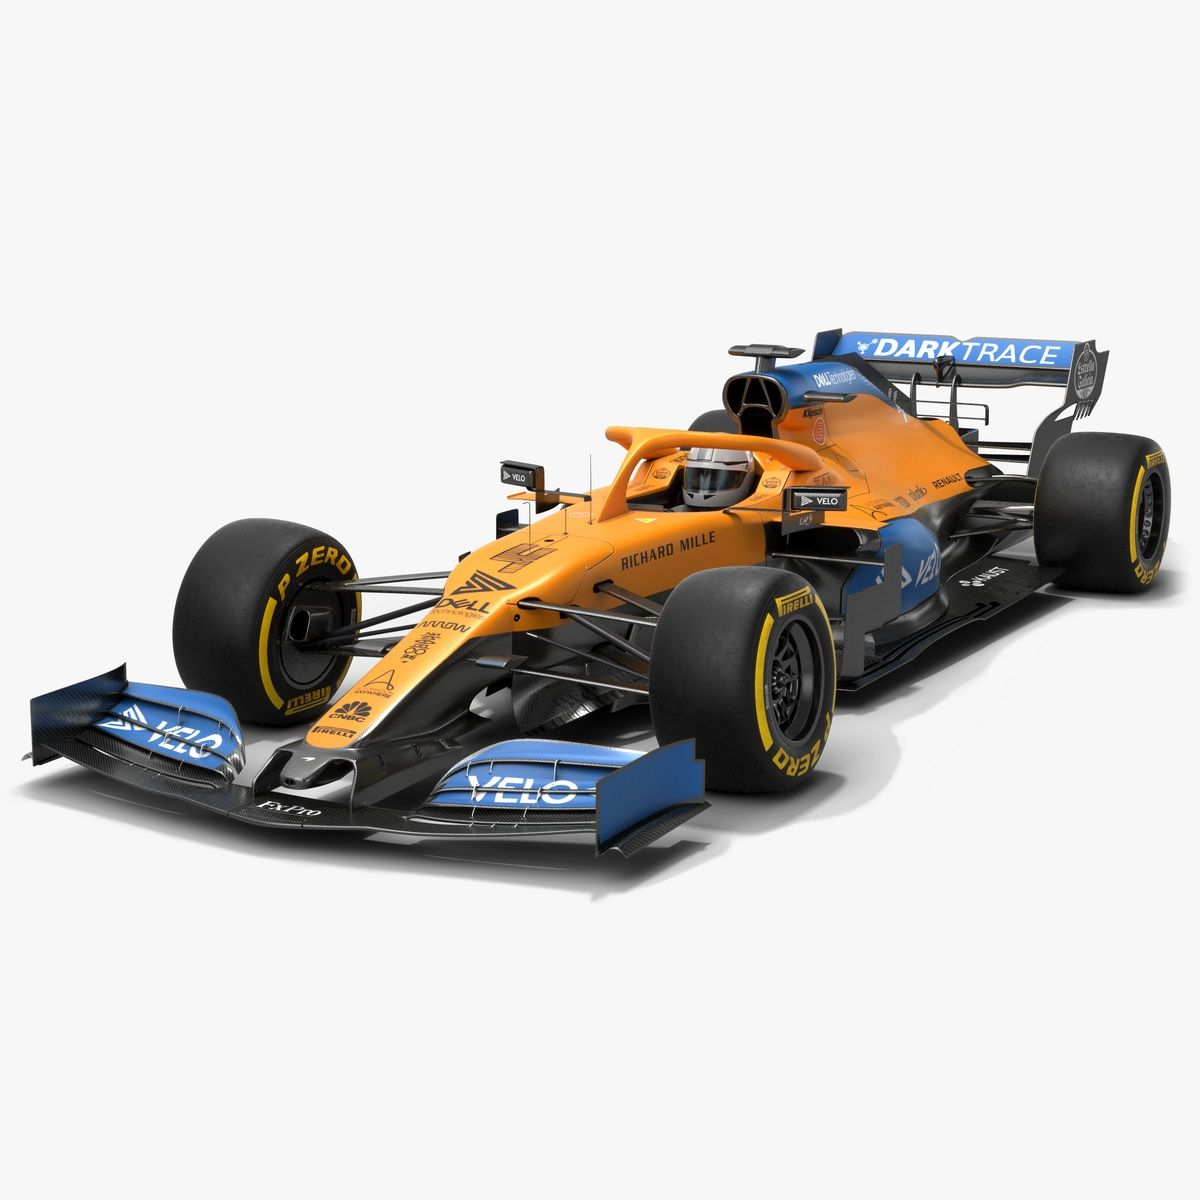 Mclaren Showed A Strong Season Start At The F1 Pre Season Testing In Barcelona Therefore We Can Wait For A Really Good R Mclaren Formula 1 Mclaren Formula 1